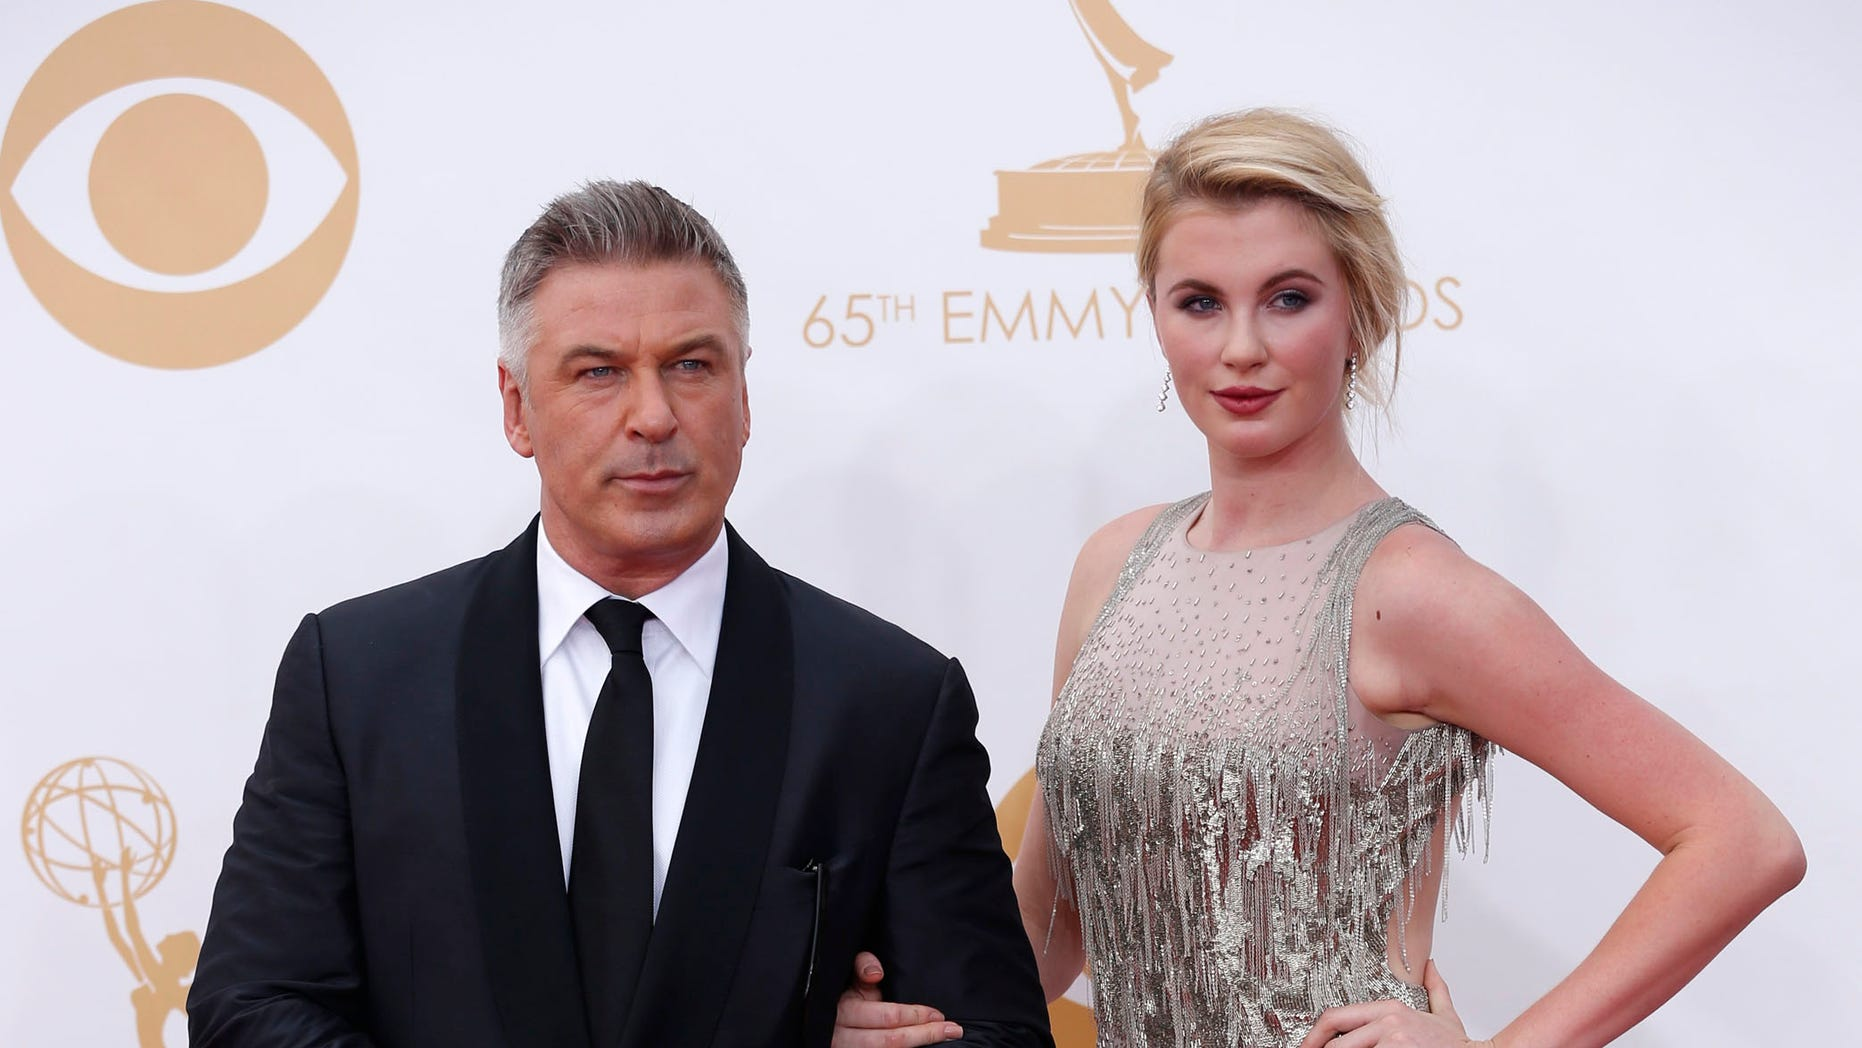 """Actor Alec Baldwin, from the NBC sitcom """"30 Rock,"""" arrives with his daughter Ireland at the 65th Primetime Emmy Awards in Los Angeles September 22, 2013.  REUTERS/Mario Anzuoni (UNITED STATES  - Tags: ENTERTAINMENT)  (EMMYS-ARRIVALS) - RTX13VQY"""